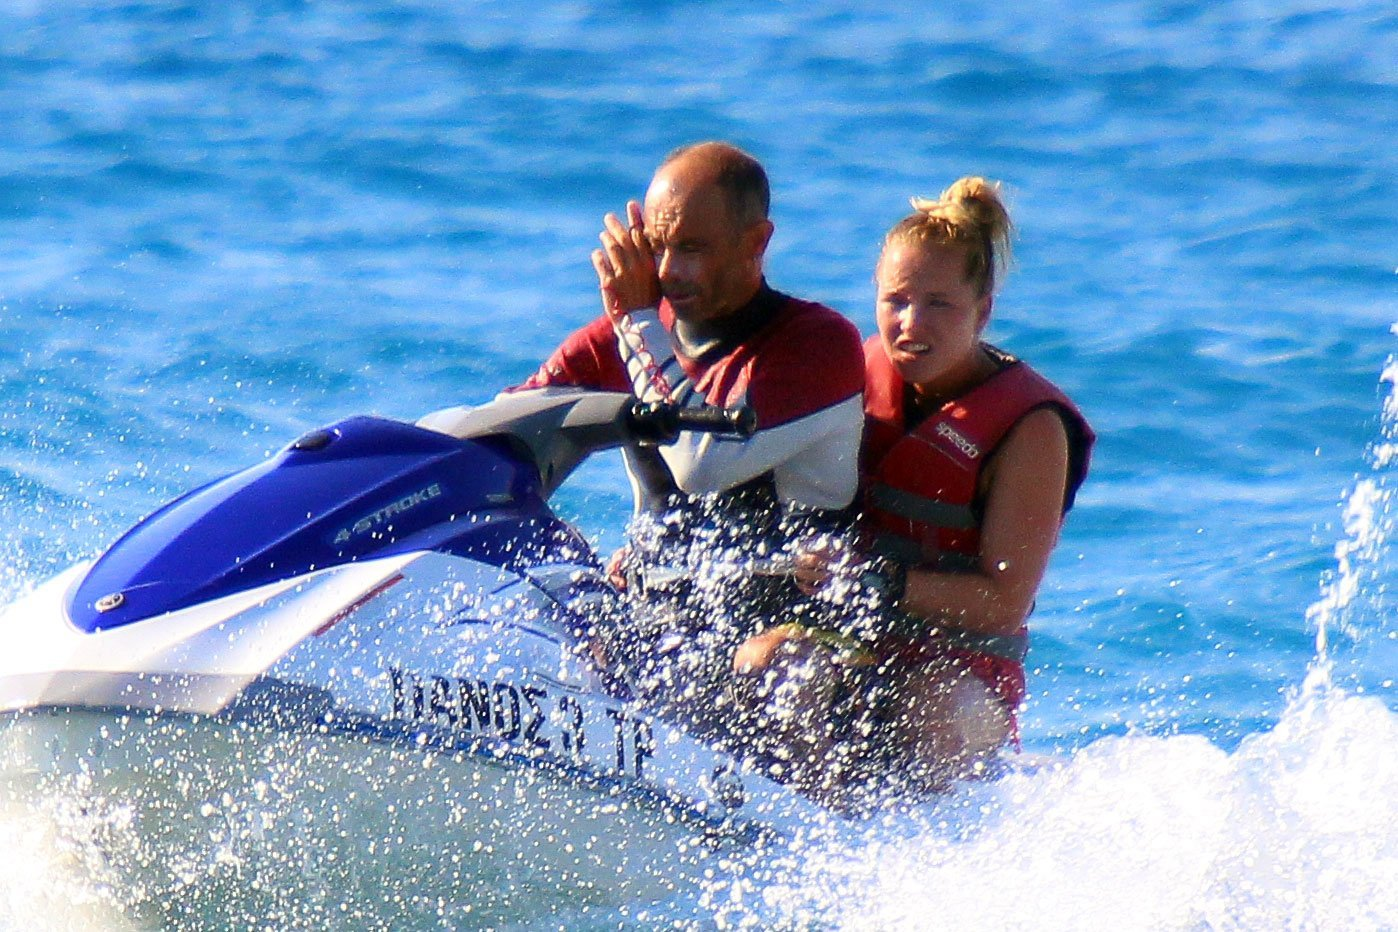 Kim & Manu are not happy when they have to use a jetbike